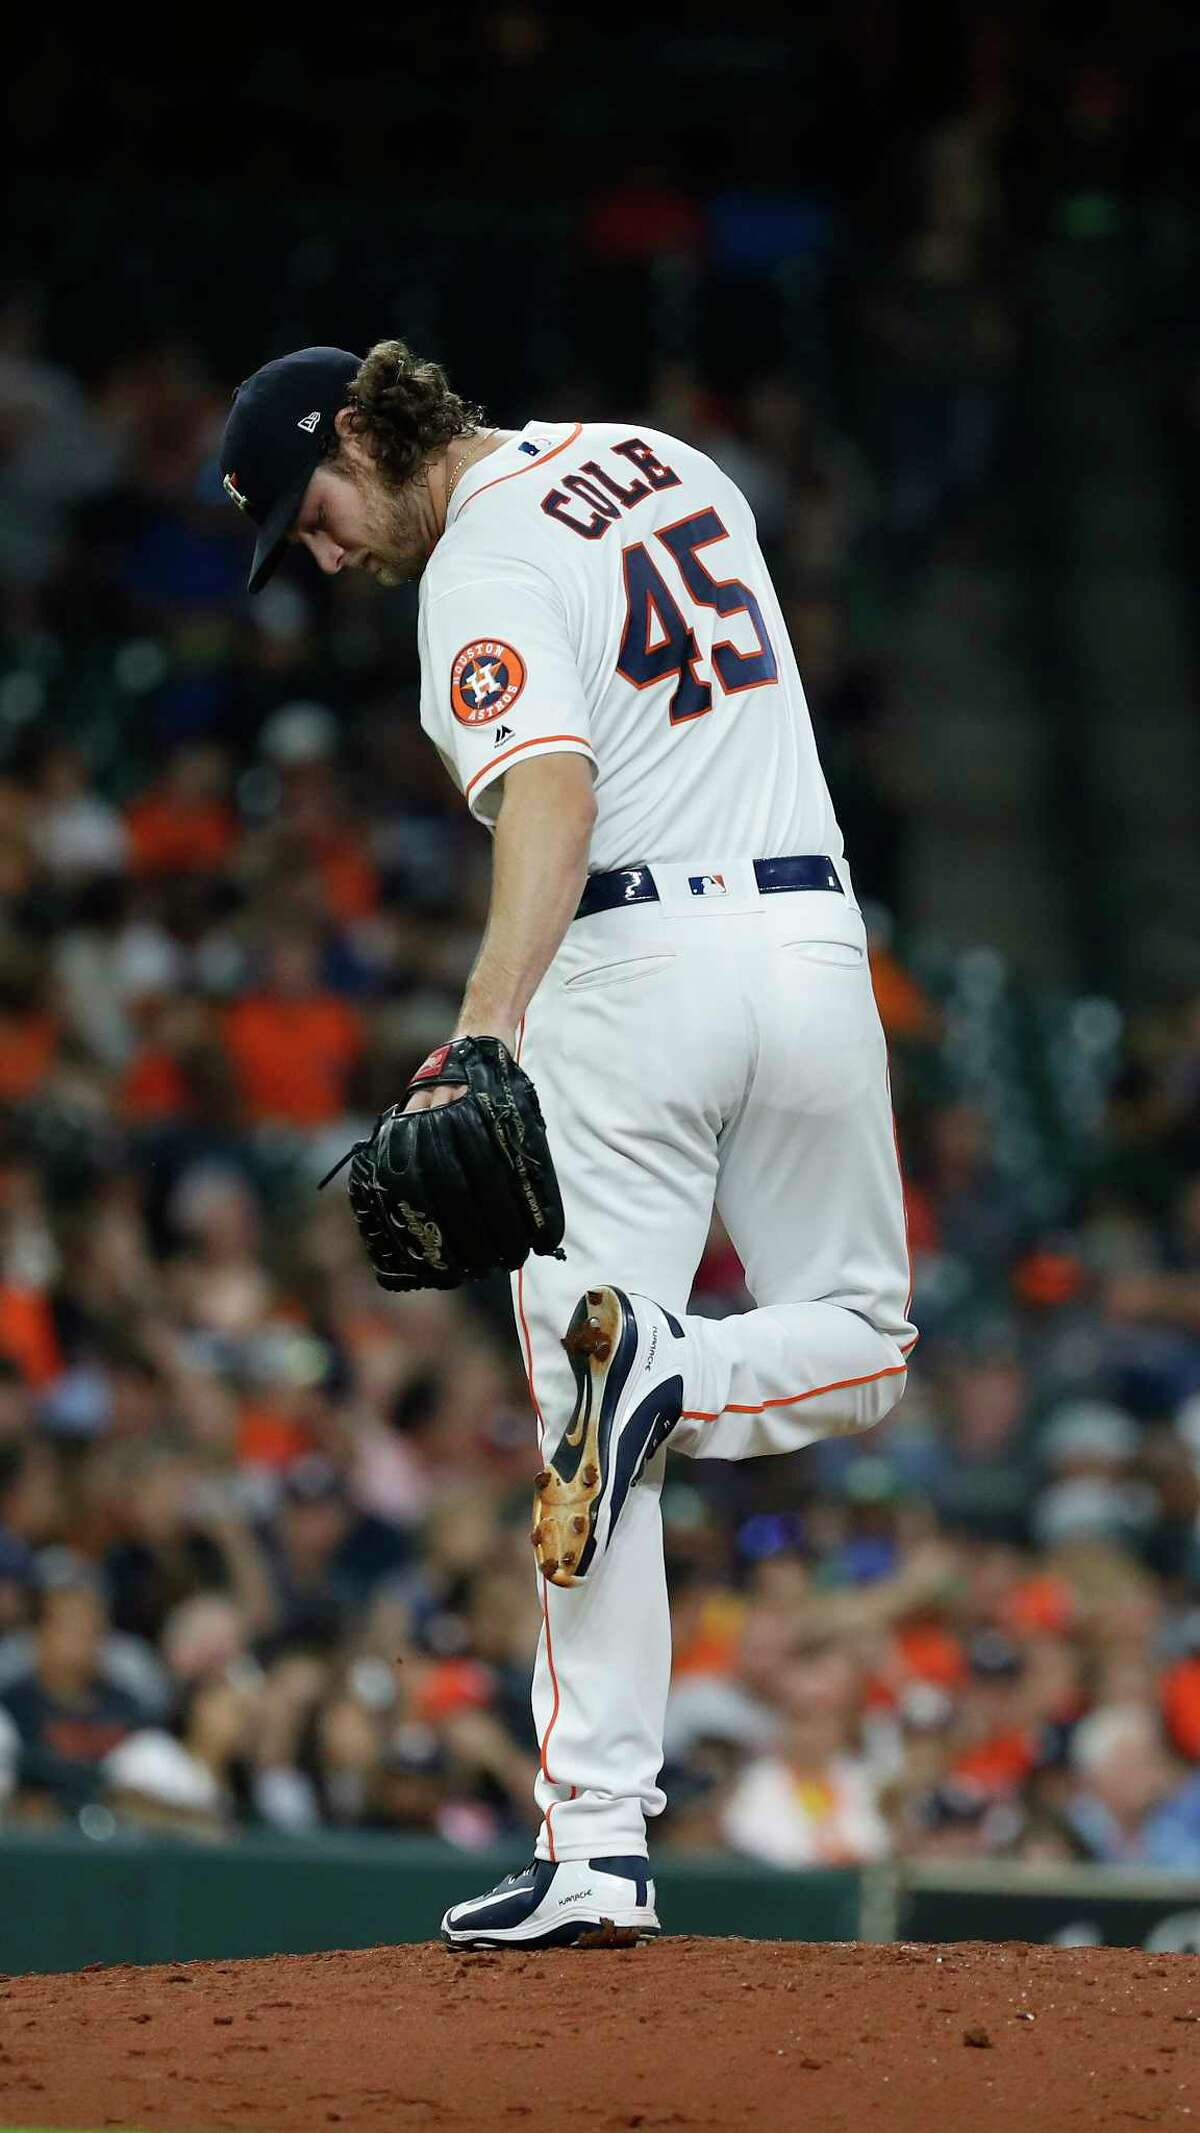 Houston Astros starting pitcher Gerrit Cole (45) checks the mud on his shoes between pitches during the fourth inning of an MLB game at Minute Maid Park, Monday, July 9, 2018, in Houston.